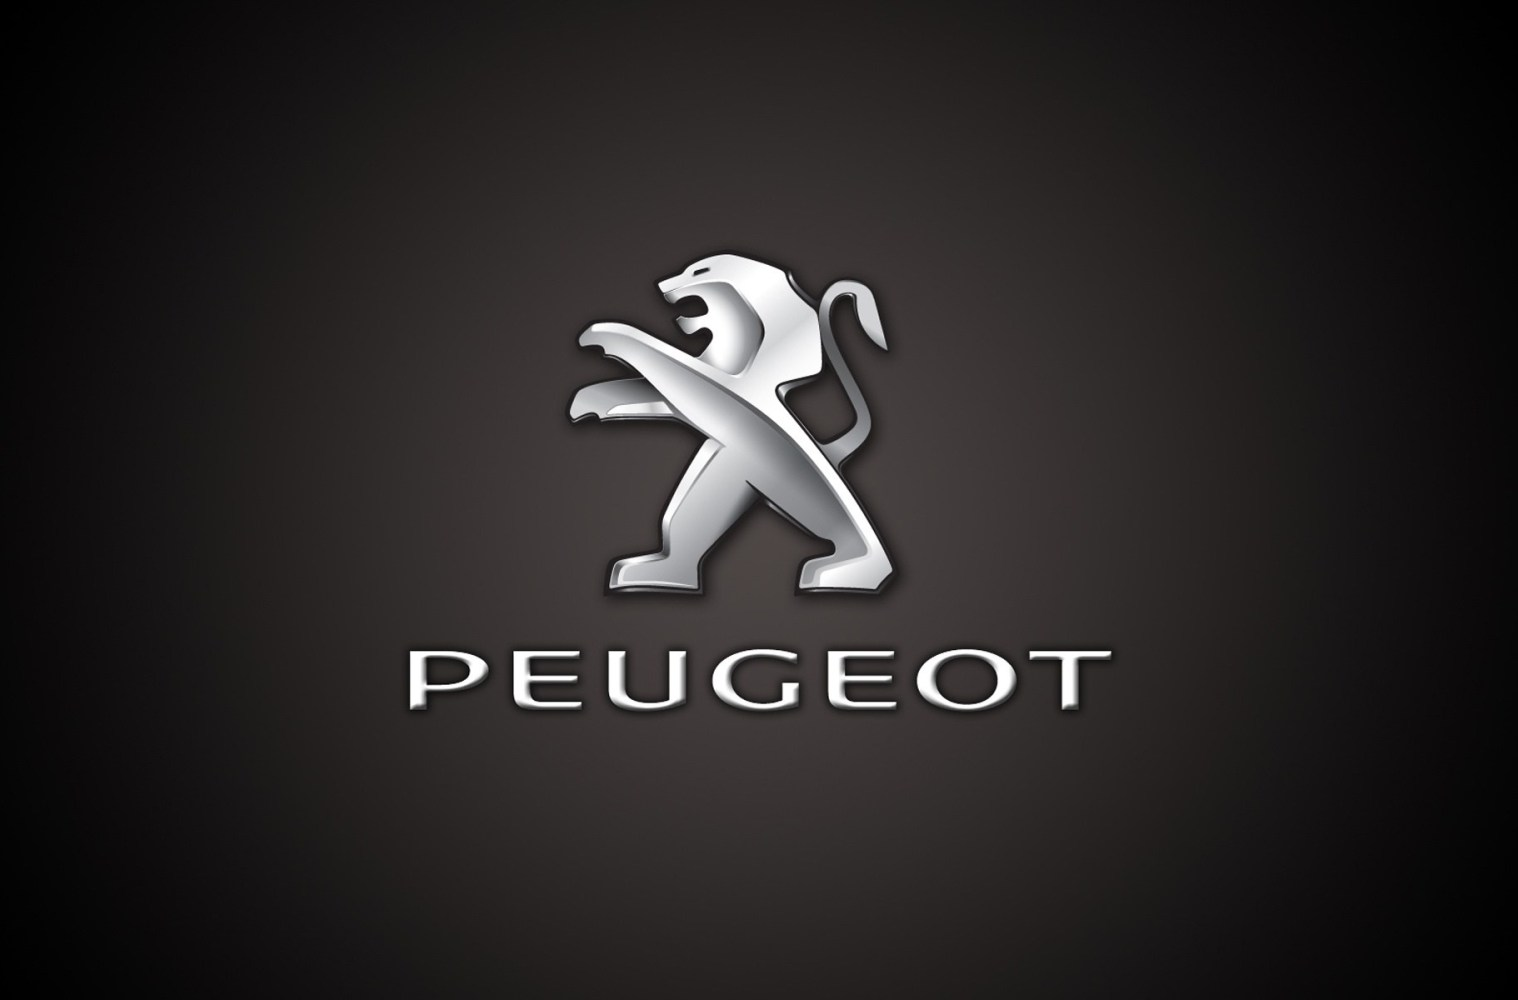 Peugeot-logo-wallpaper_3569